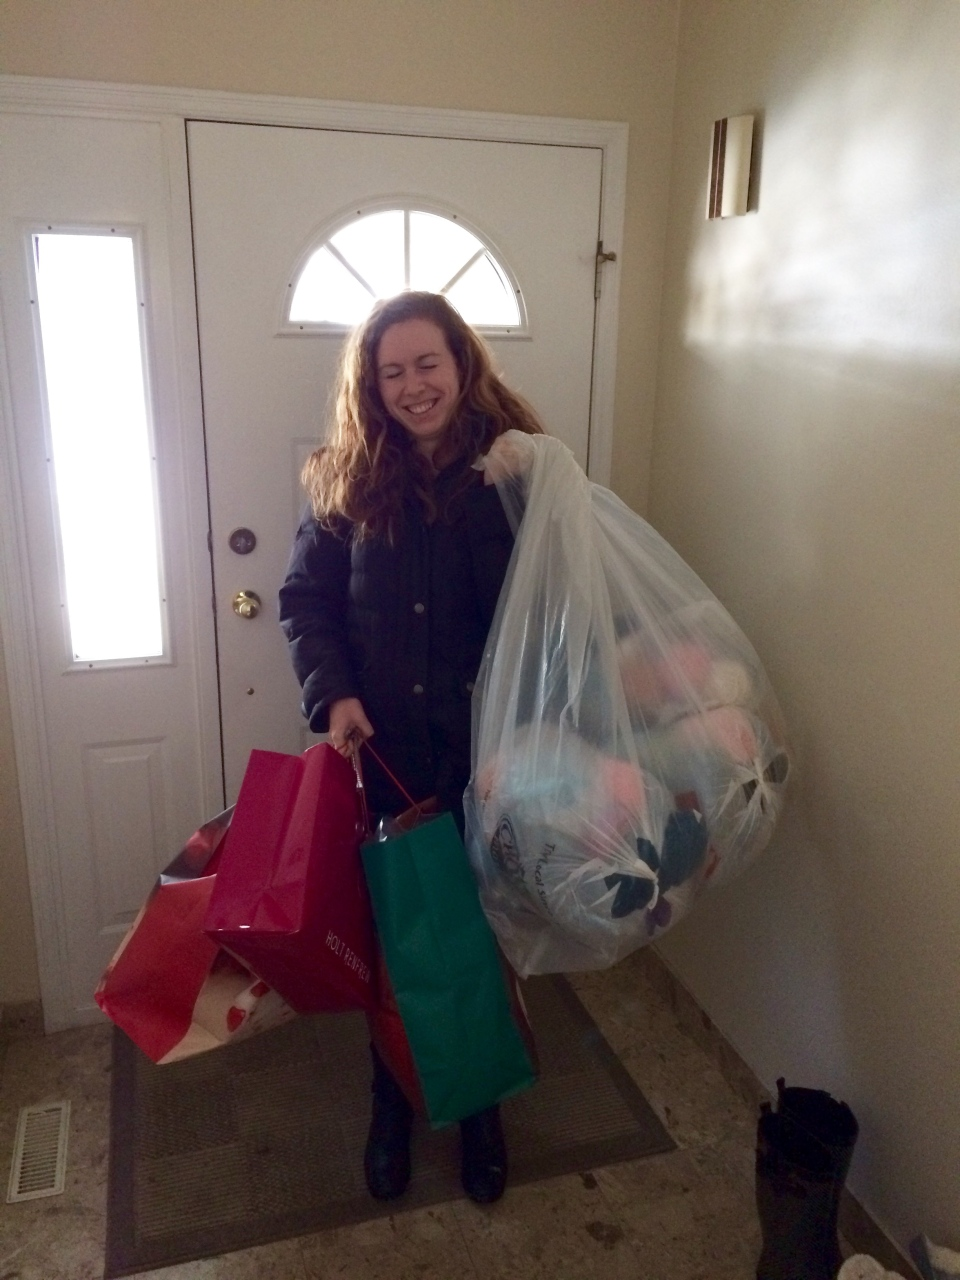 CTV Vancouver's Katelyn Verstraten imitates Santa as she arrives with the yarn donations. (CTV News). Dec. 26, 2016.